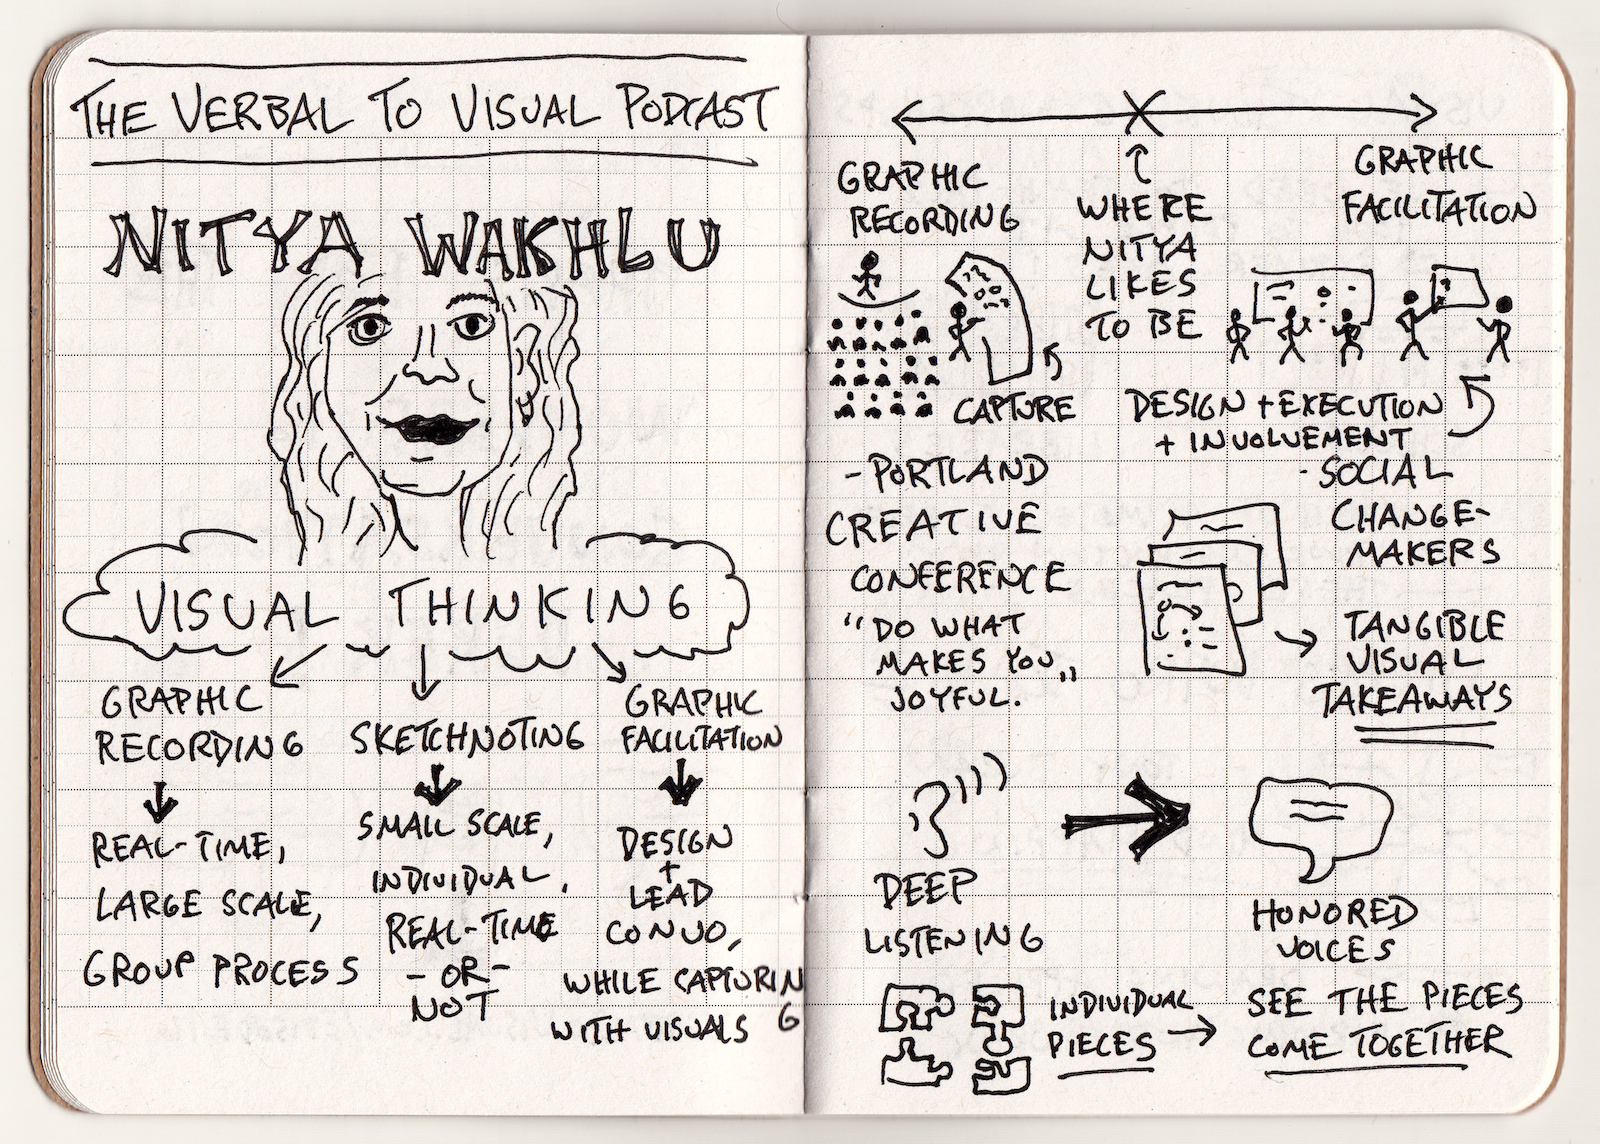 Nitya Wakhlu Serving Groups And Solving Problems (1) - The Verbal To Visual Podcast - visual thinking, graphic recording, sketchnoting, graphic facilitation, design, execution, involvement, deep listening, honored voices, visual takeaways